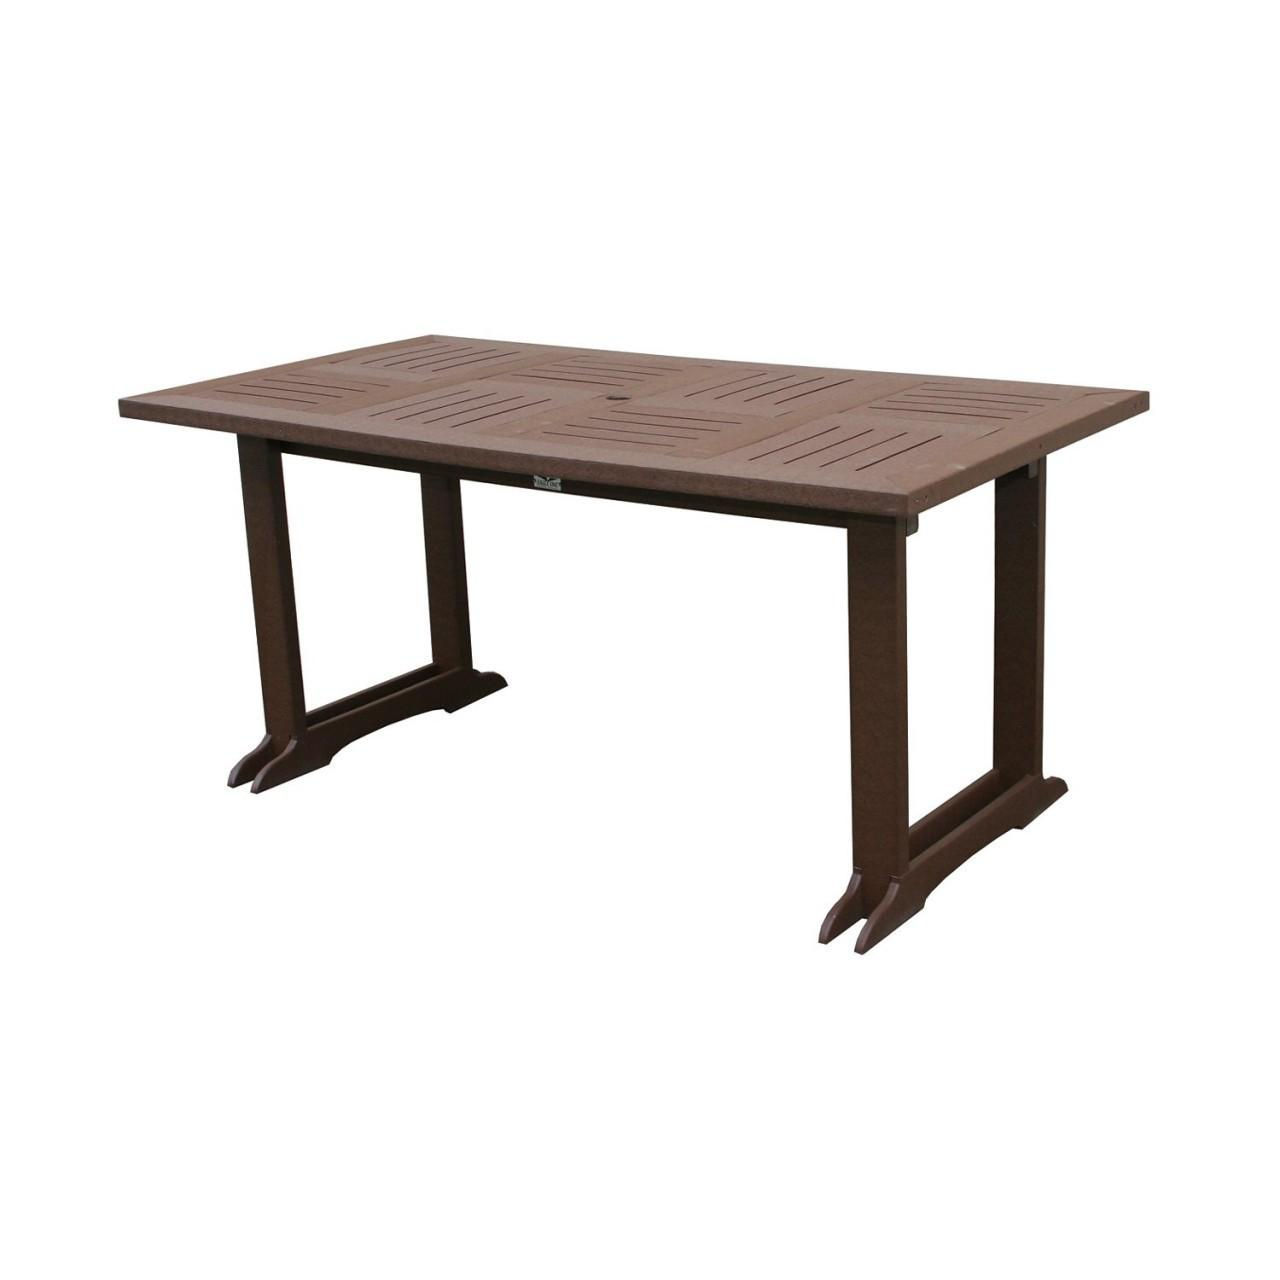 Inspirational Plastic Dining Table Modern Home